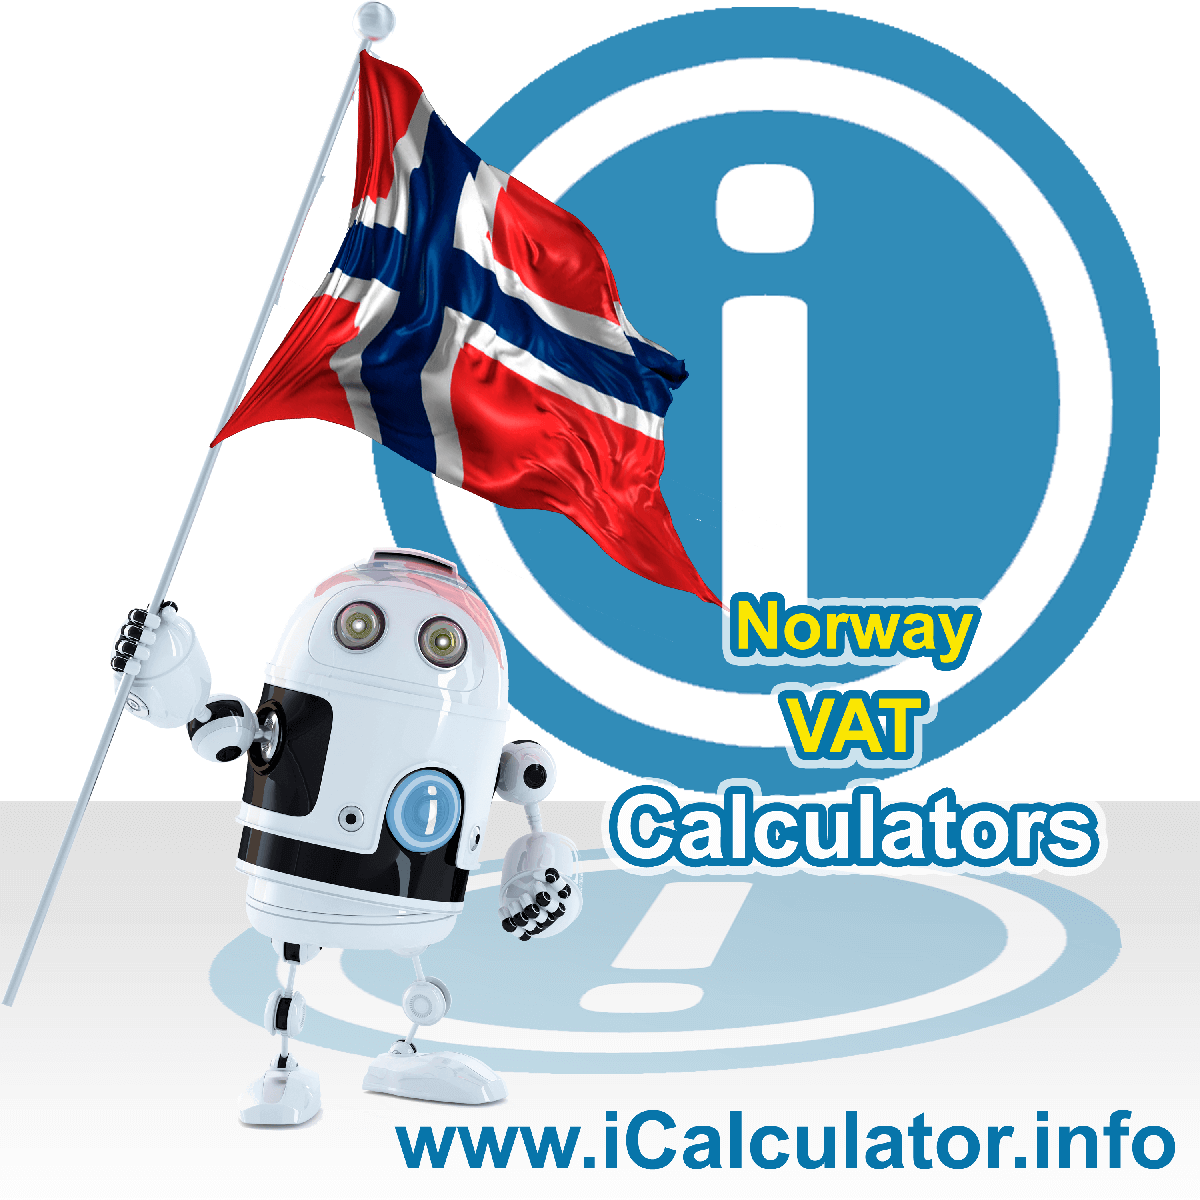 Norway VAT Calculator. This image shows the Norway flag and information relating to the VAT formula used for calculating Value Added Tax in Norway using the Norway VAT Calculator in 2021